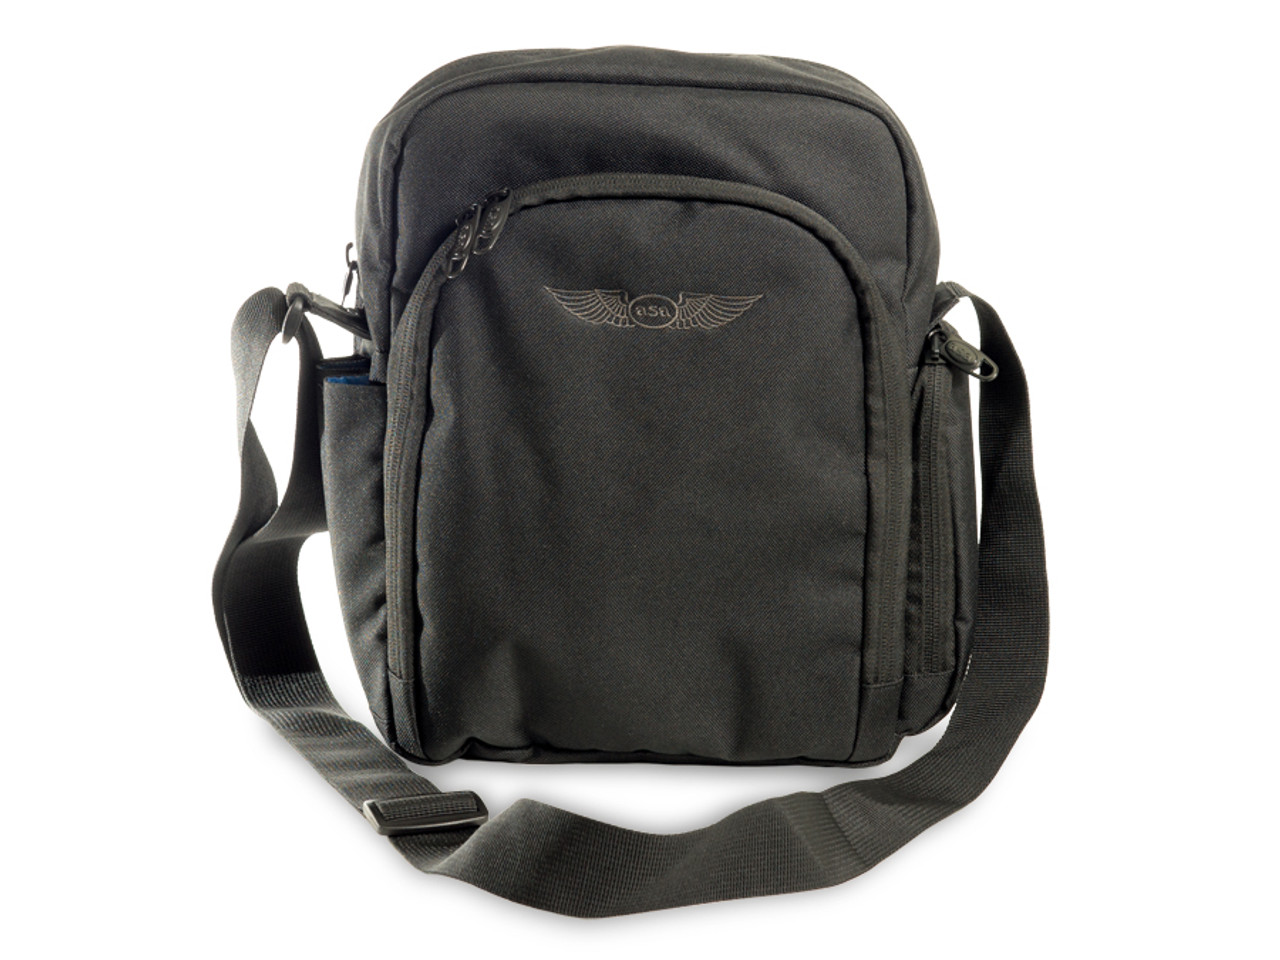 ASA Dispatch Bag